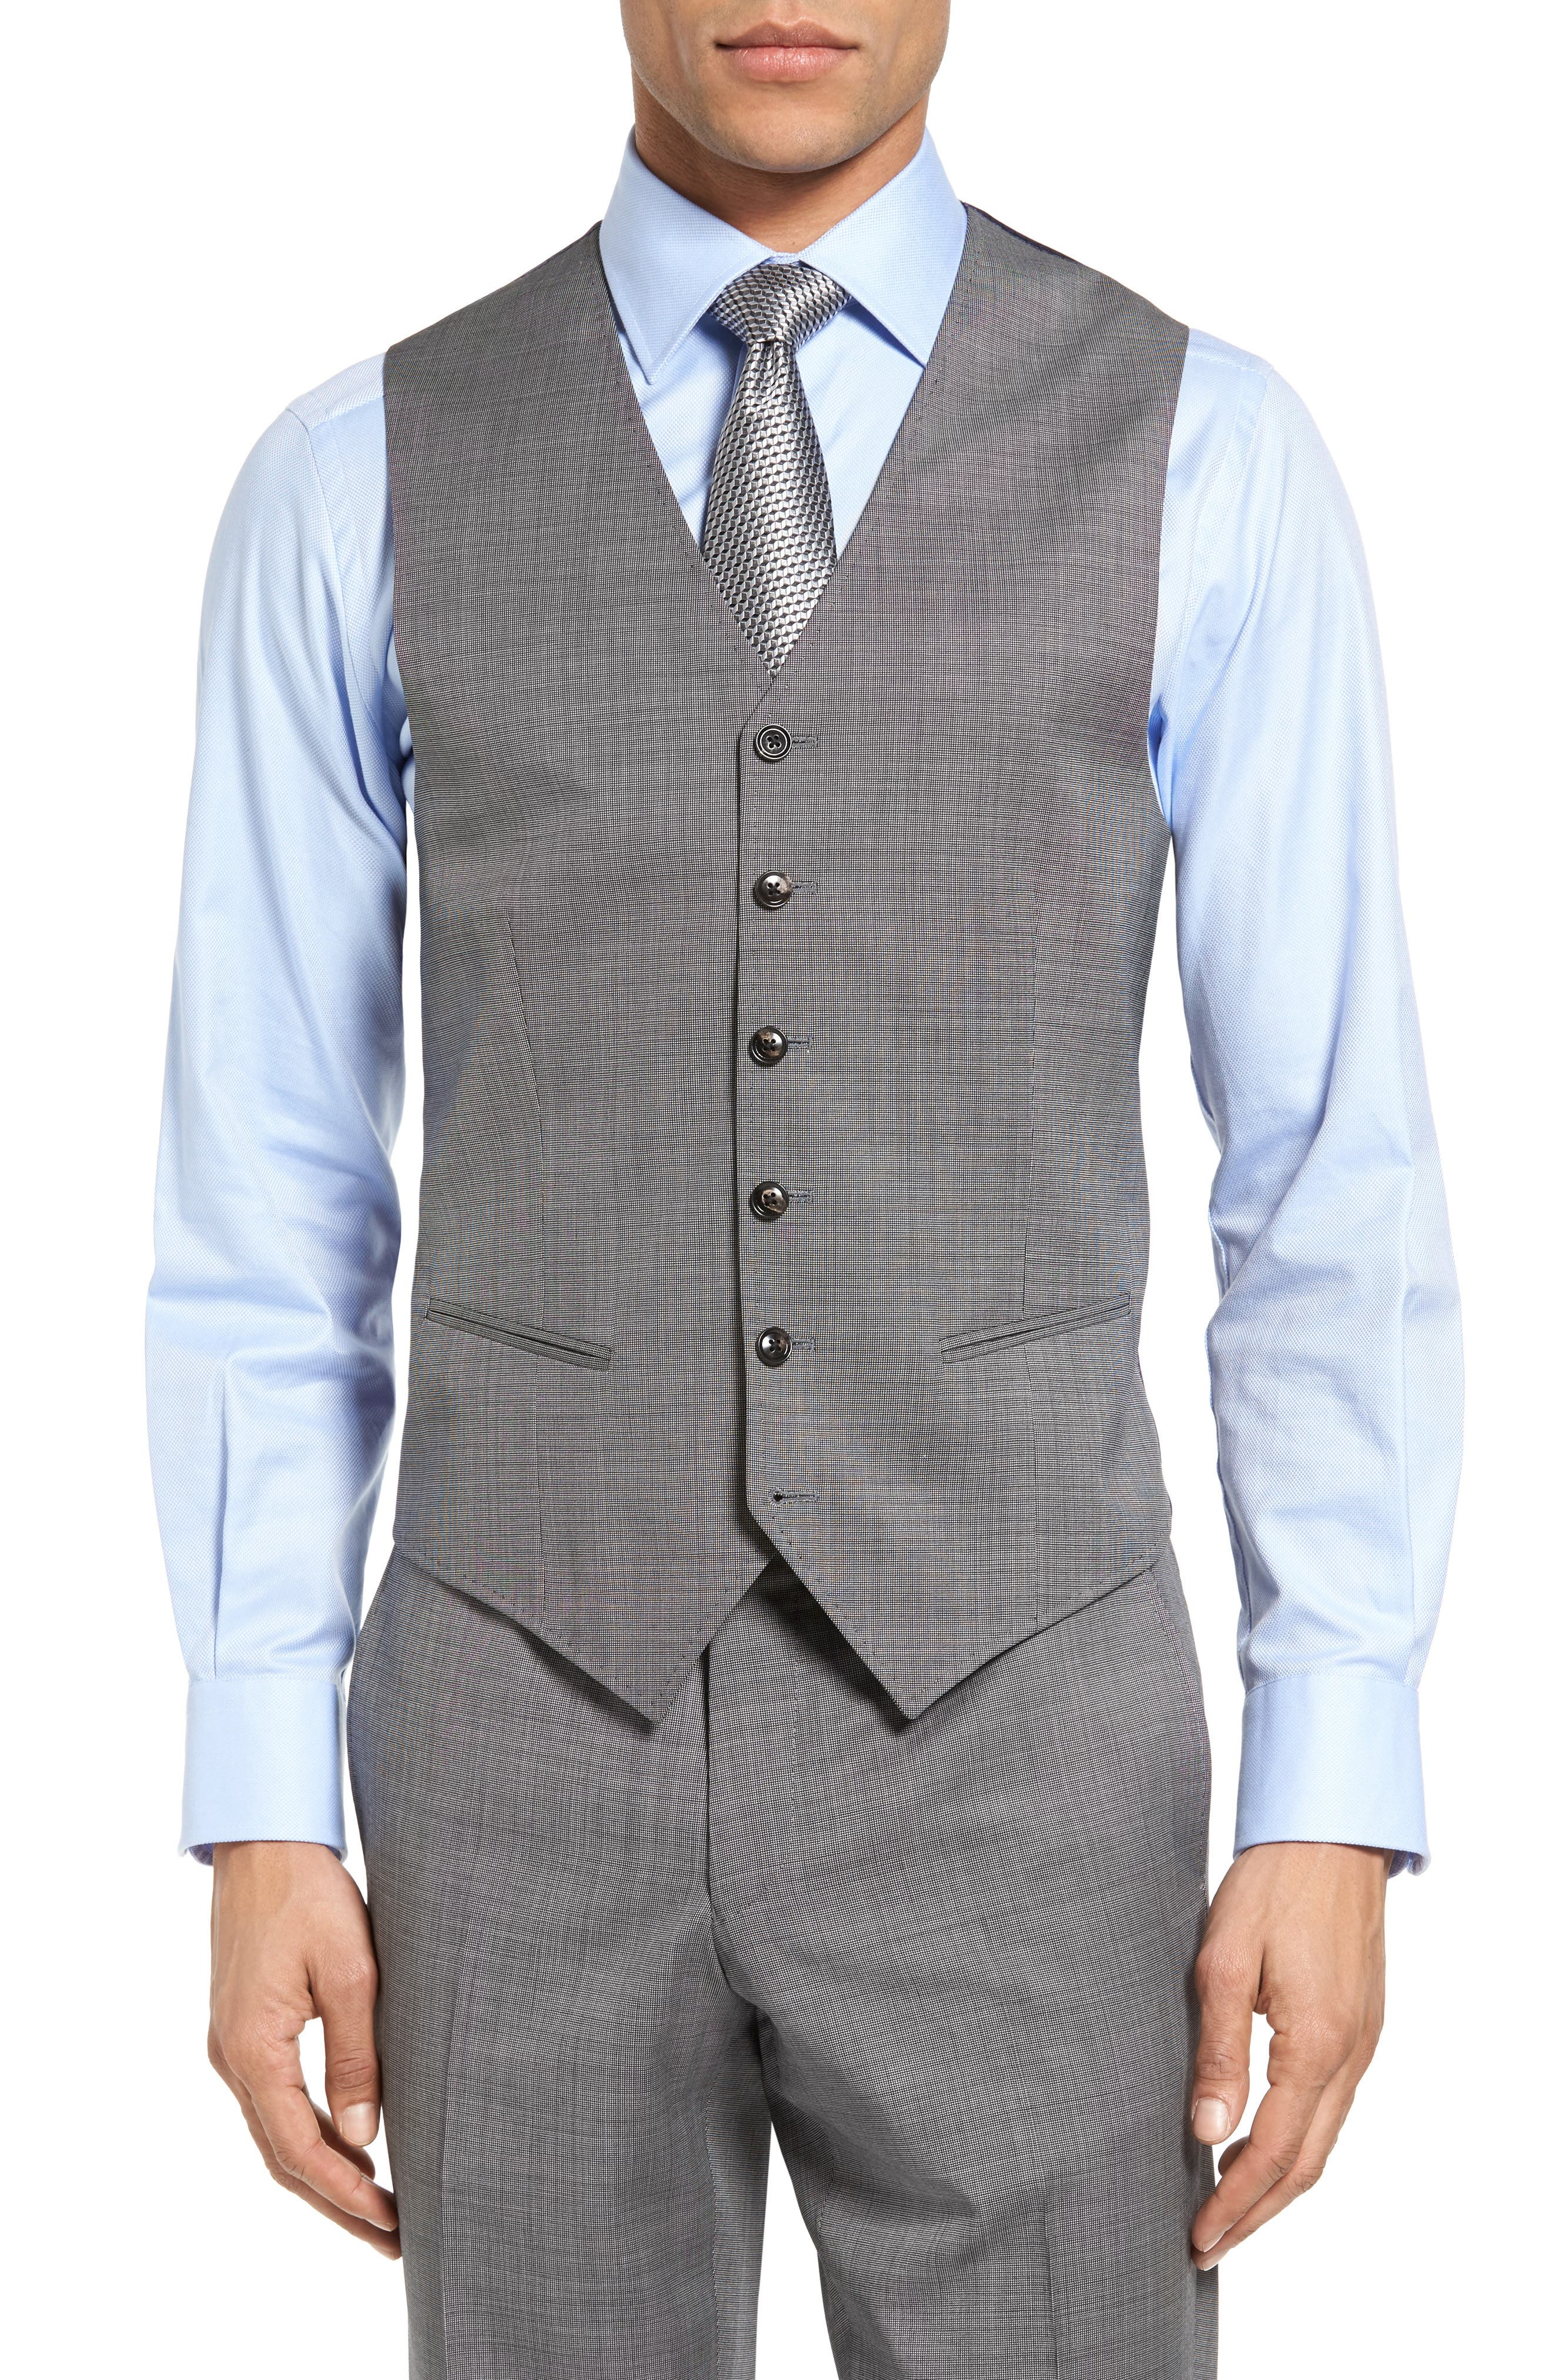 Jones Trim Fit Wool Vest,                         Main,                         color, Light Grey